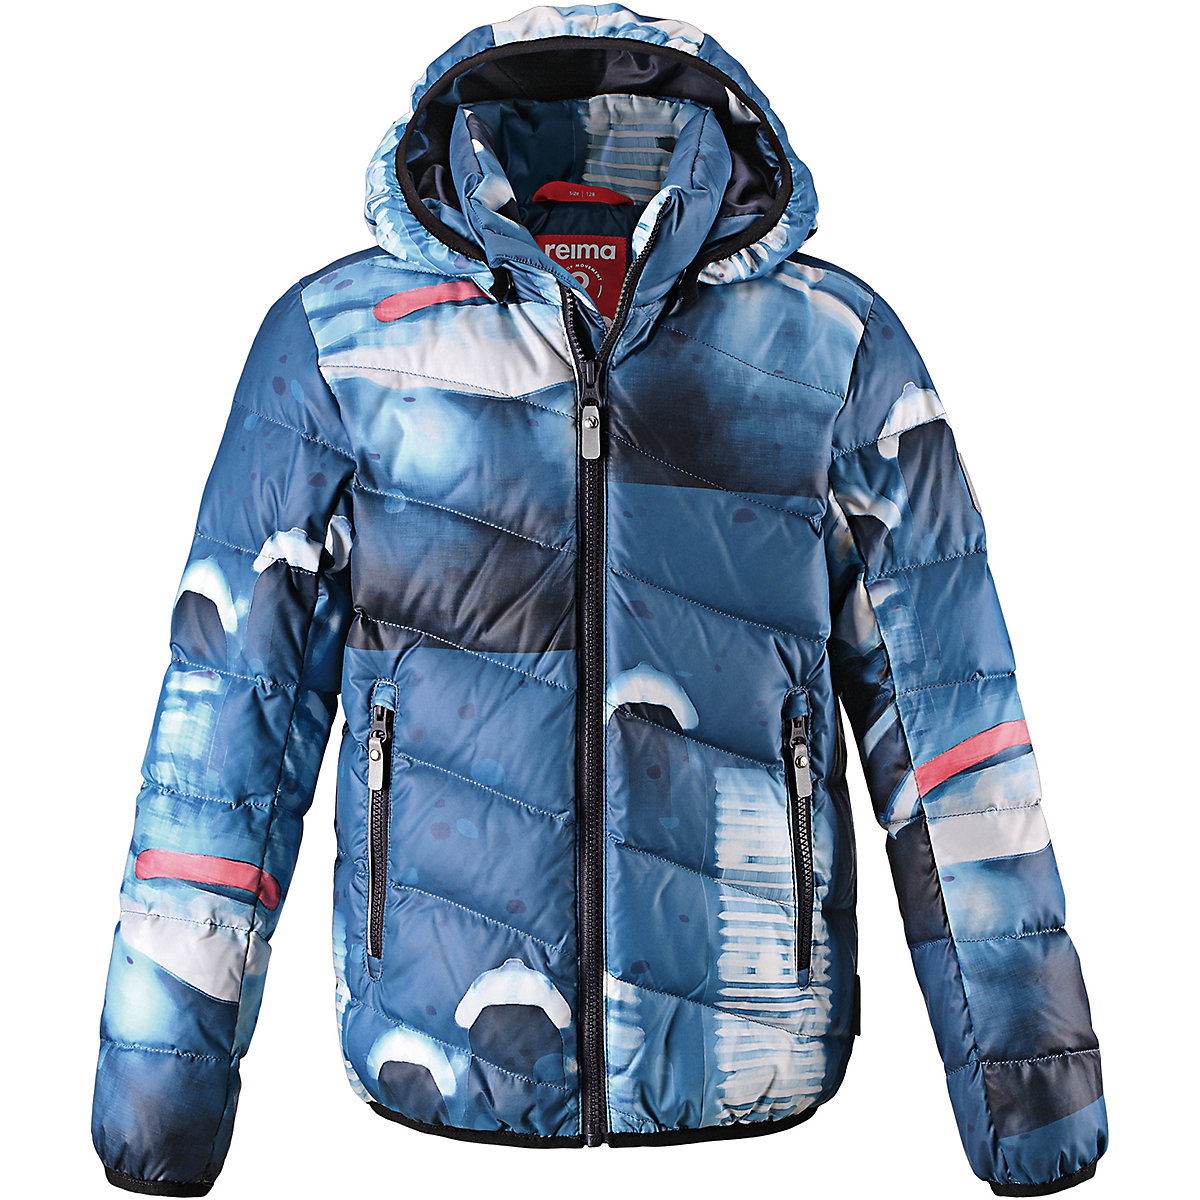 REIMA Jackets 8689135 for boys polyester winter  fur clothes boy jackets